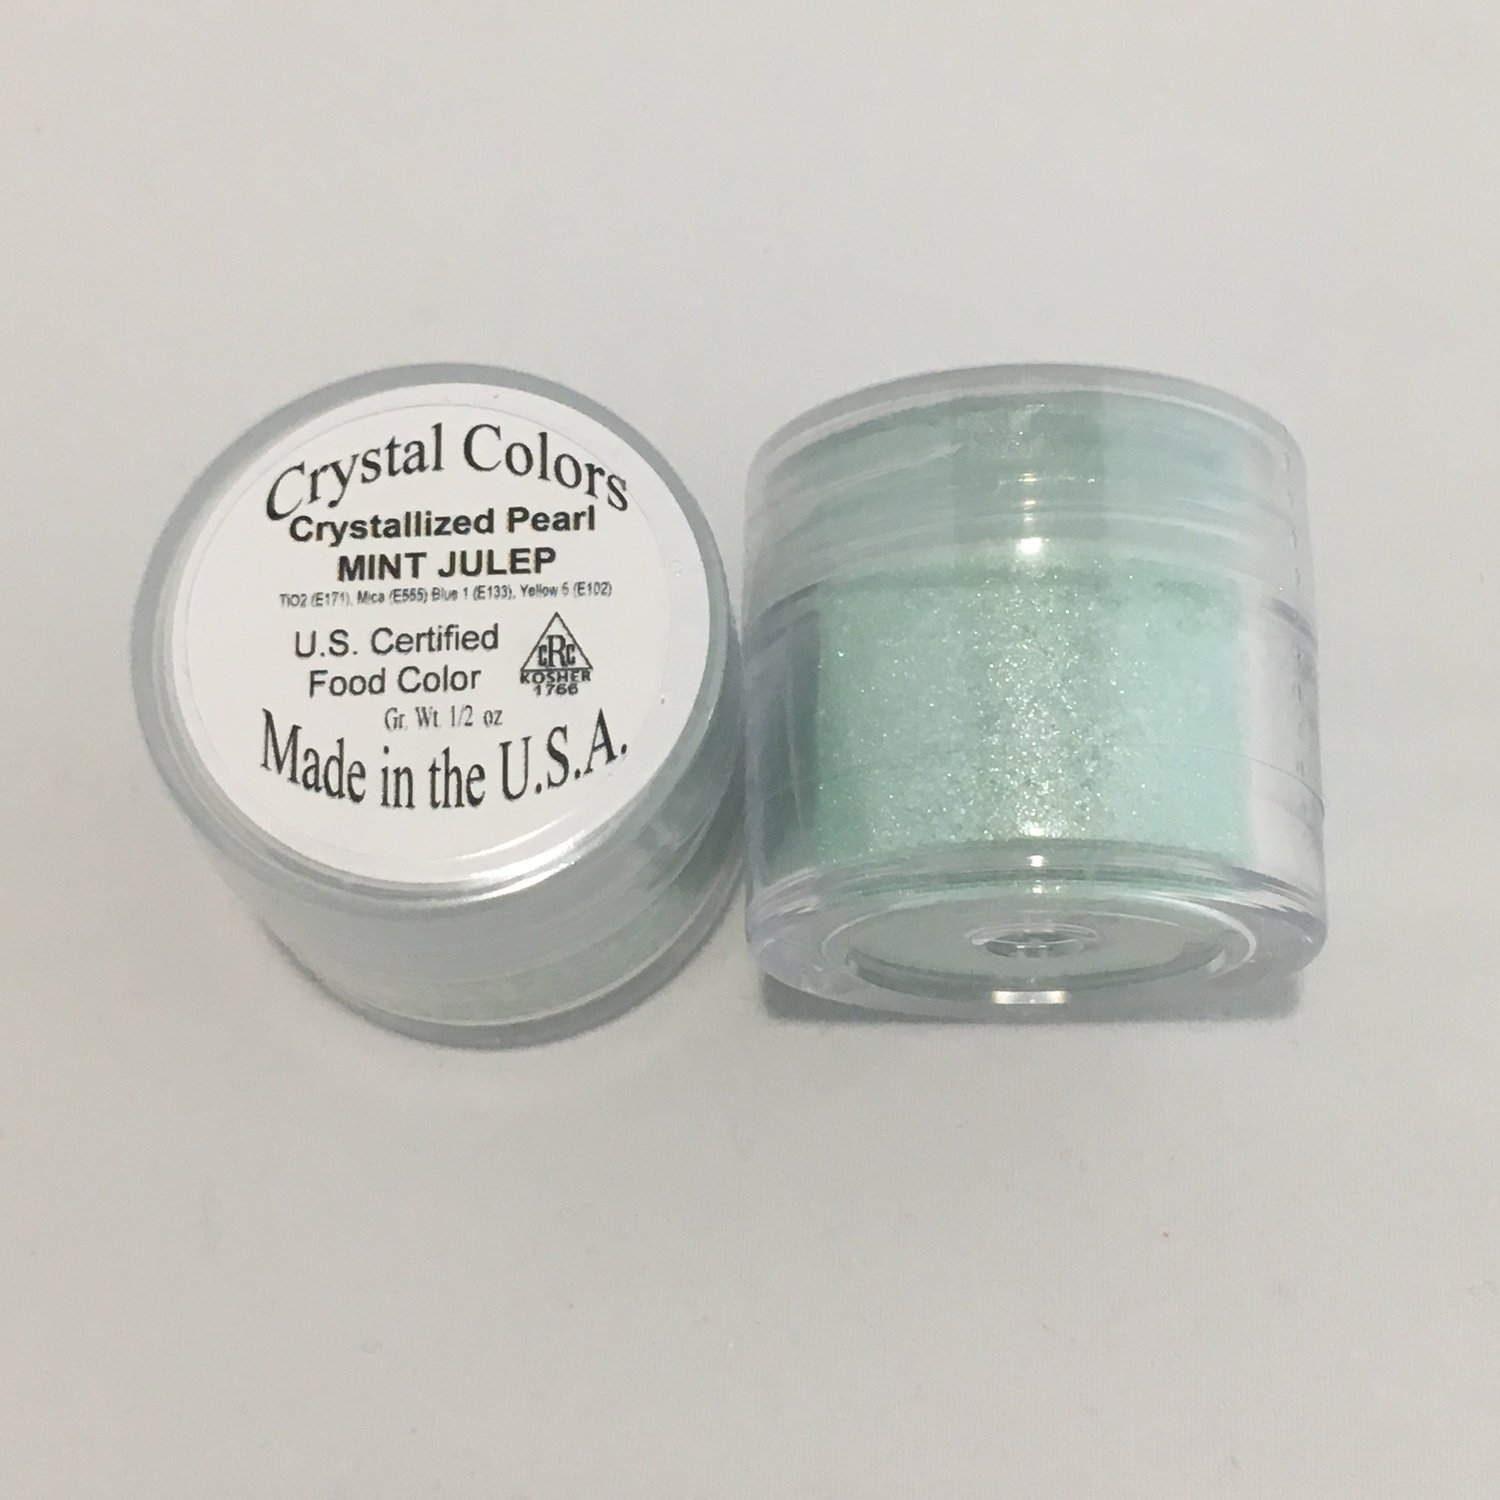 Crystal Colors Mint Julep